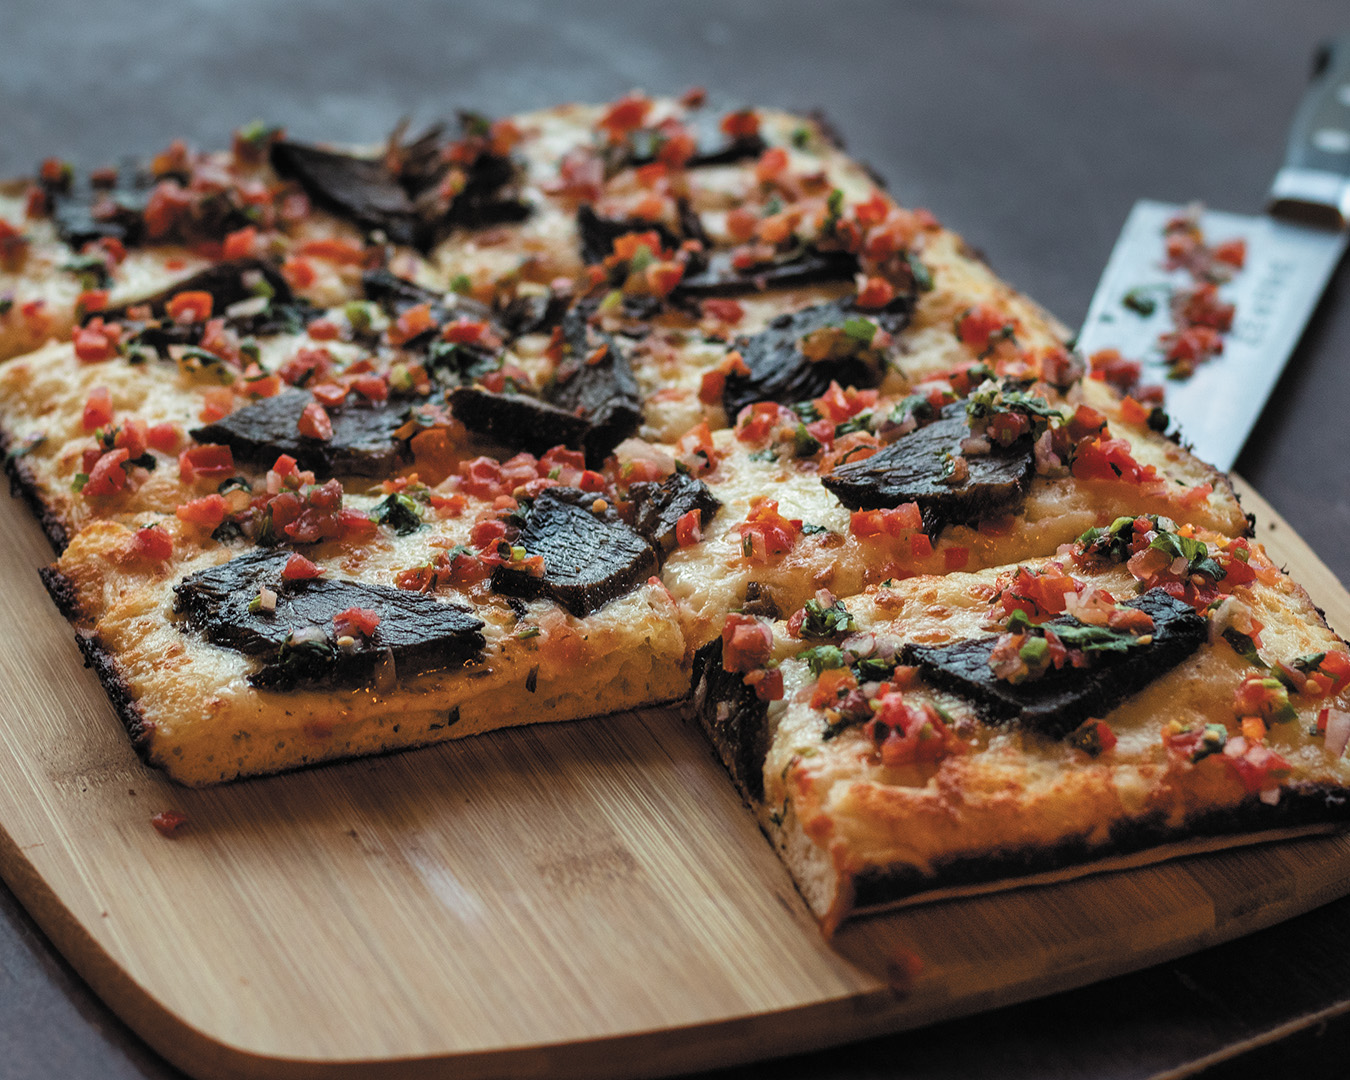 A Detroit-style pizza, with one slice missing, on a wooden cutting board